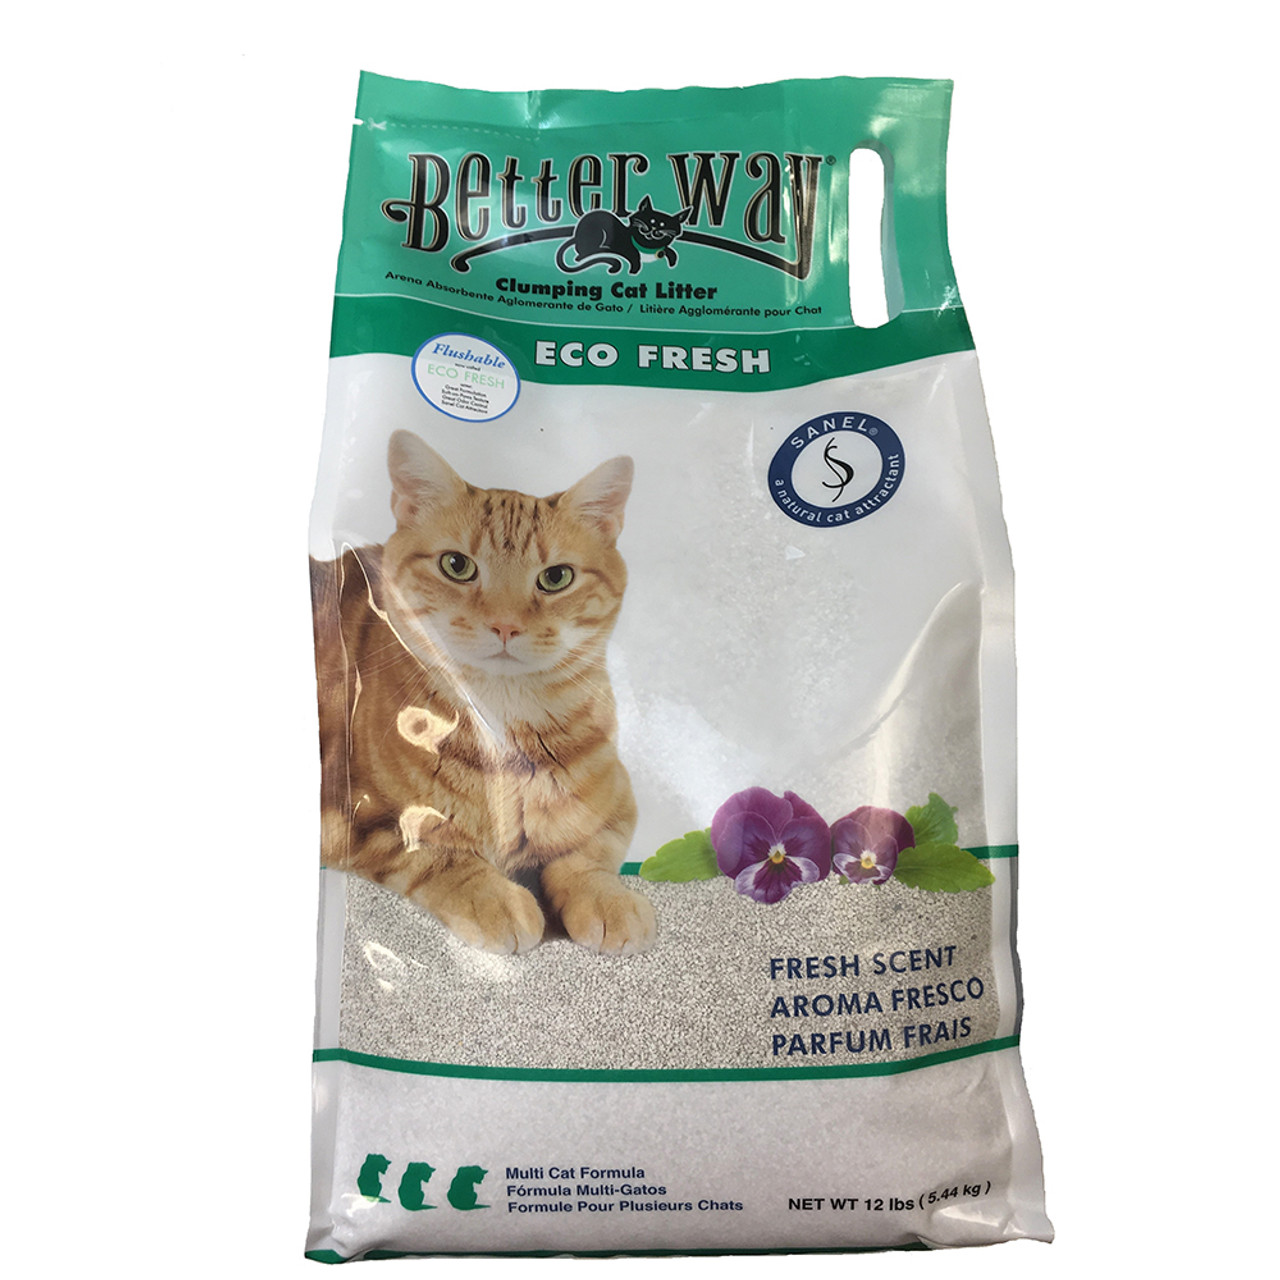 Better Way Eco Fresh Clumping Cat Litter